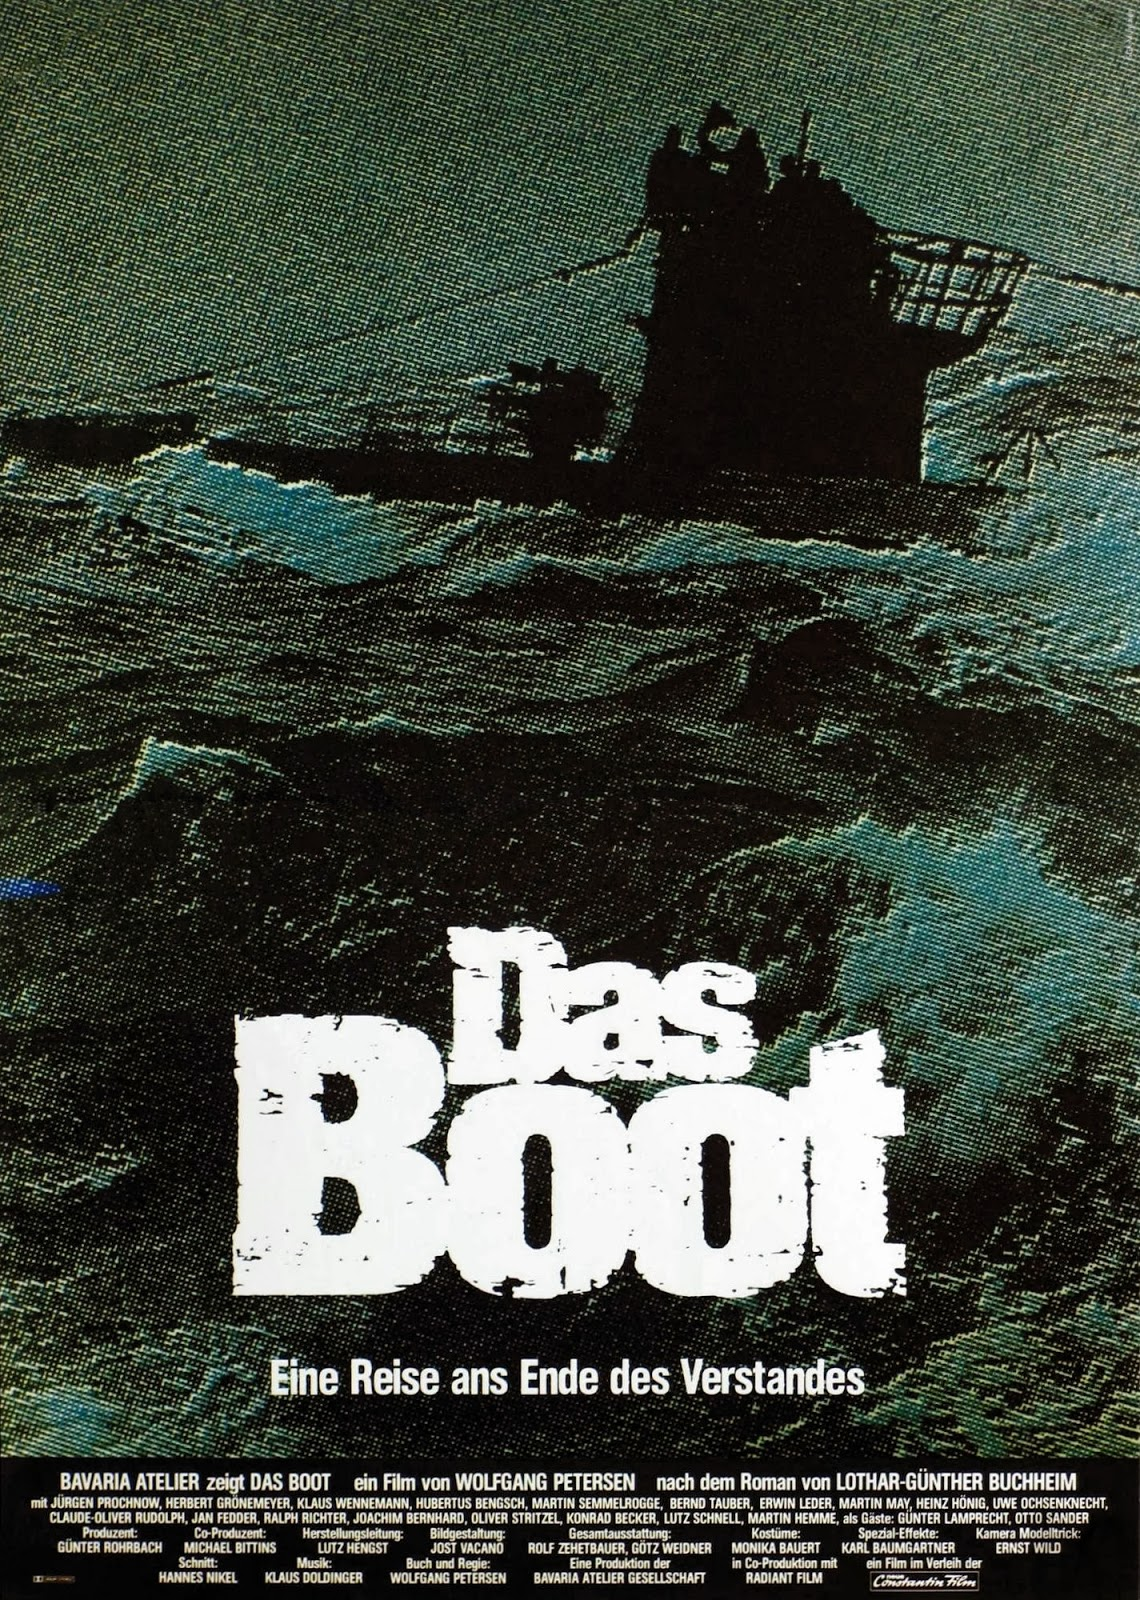 Film Excess: Das Boot (1981) or, The German U-boat Tragedy